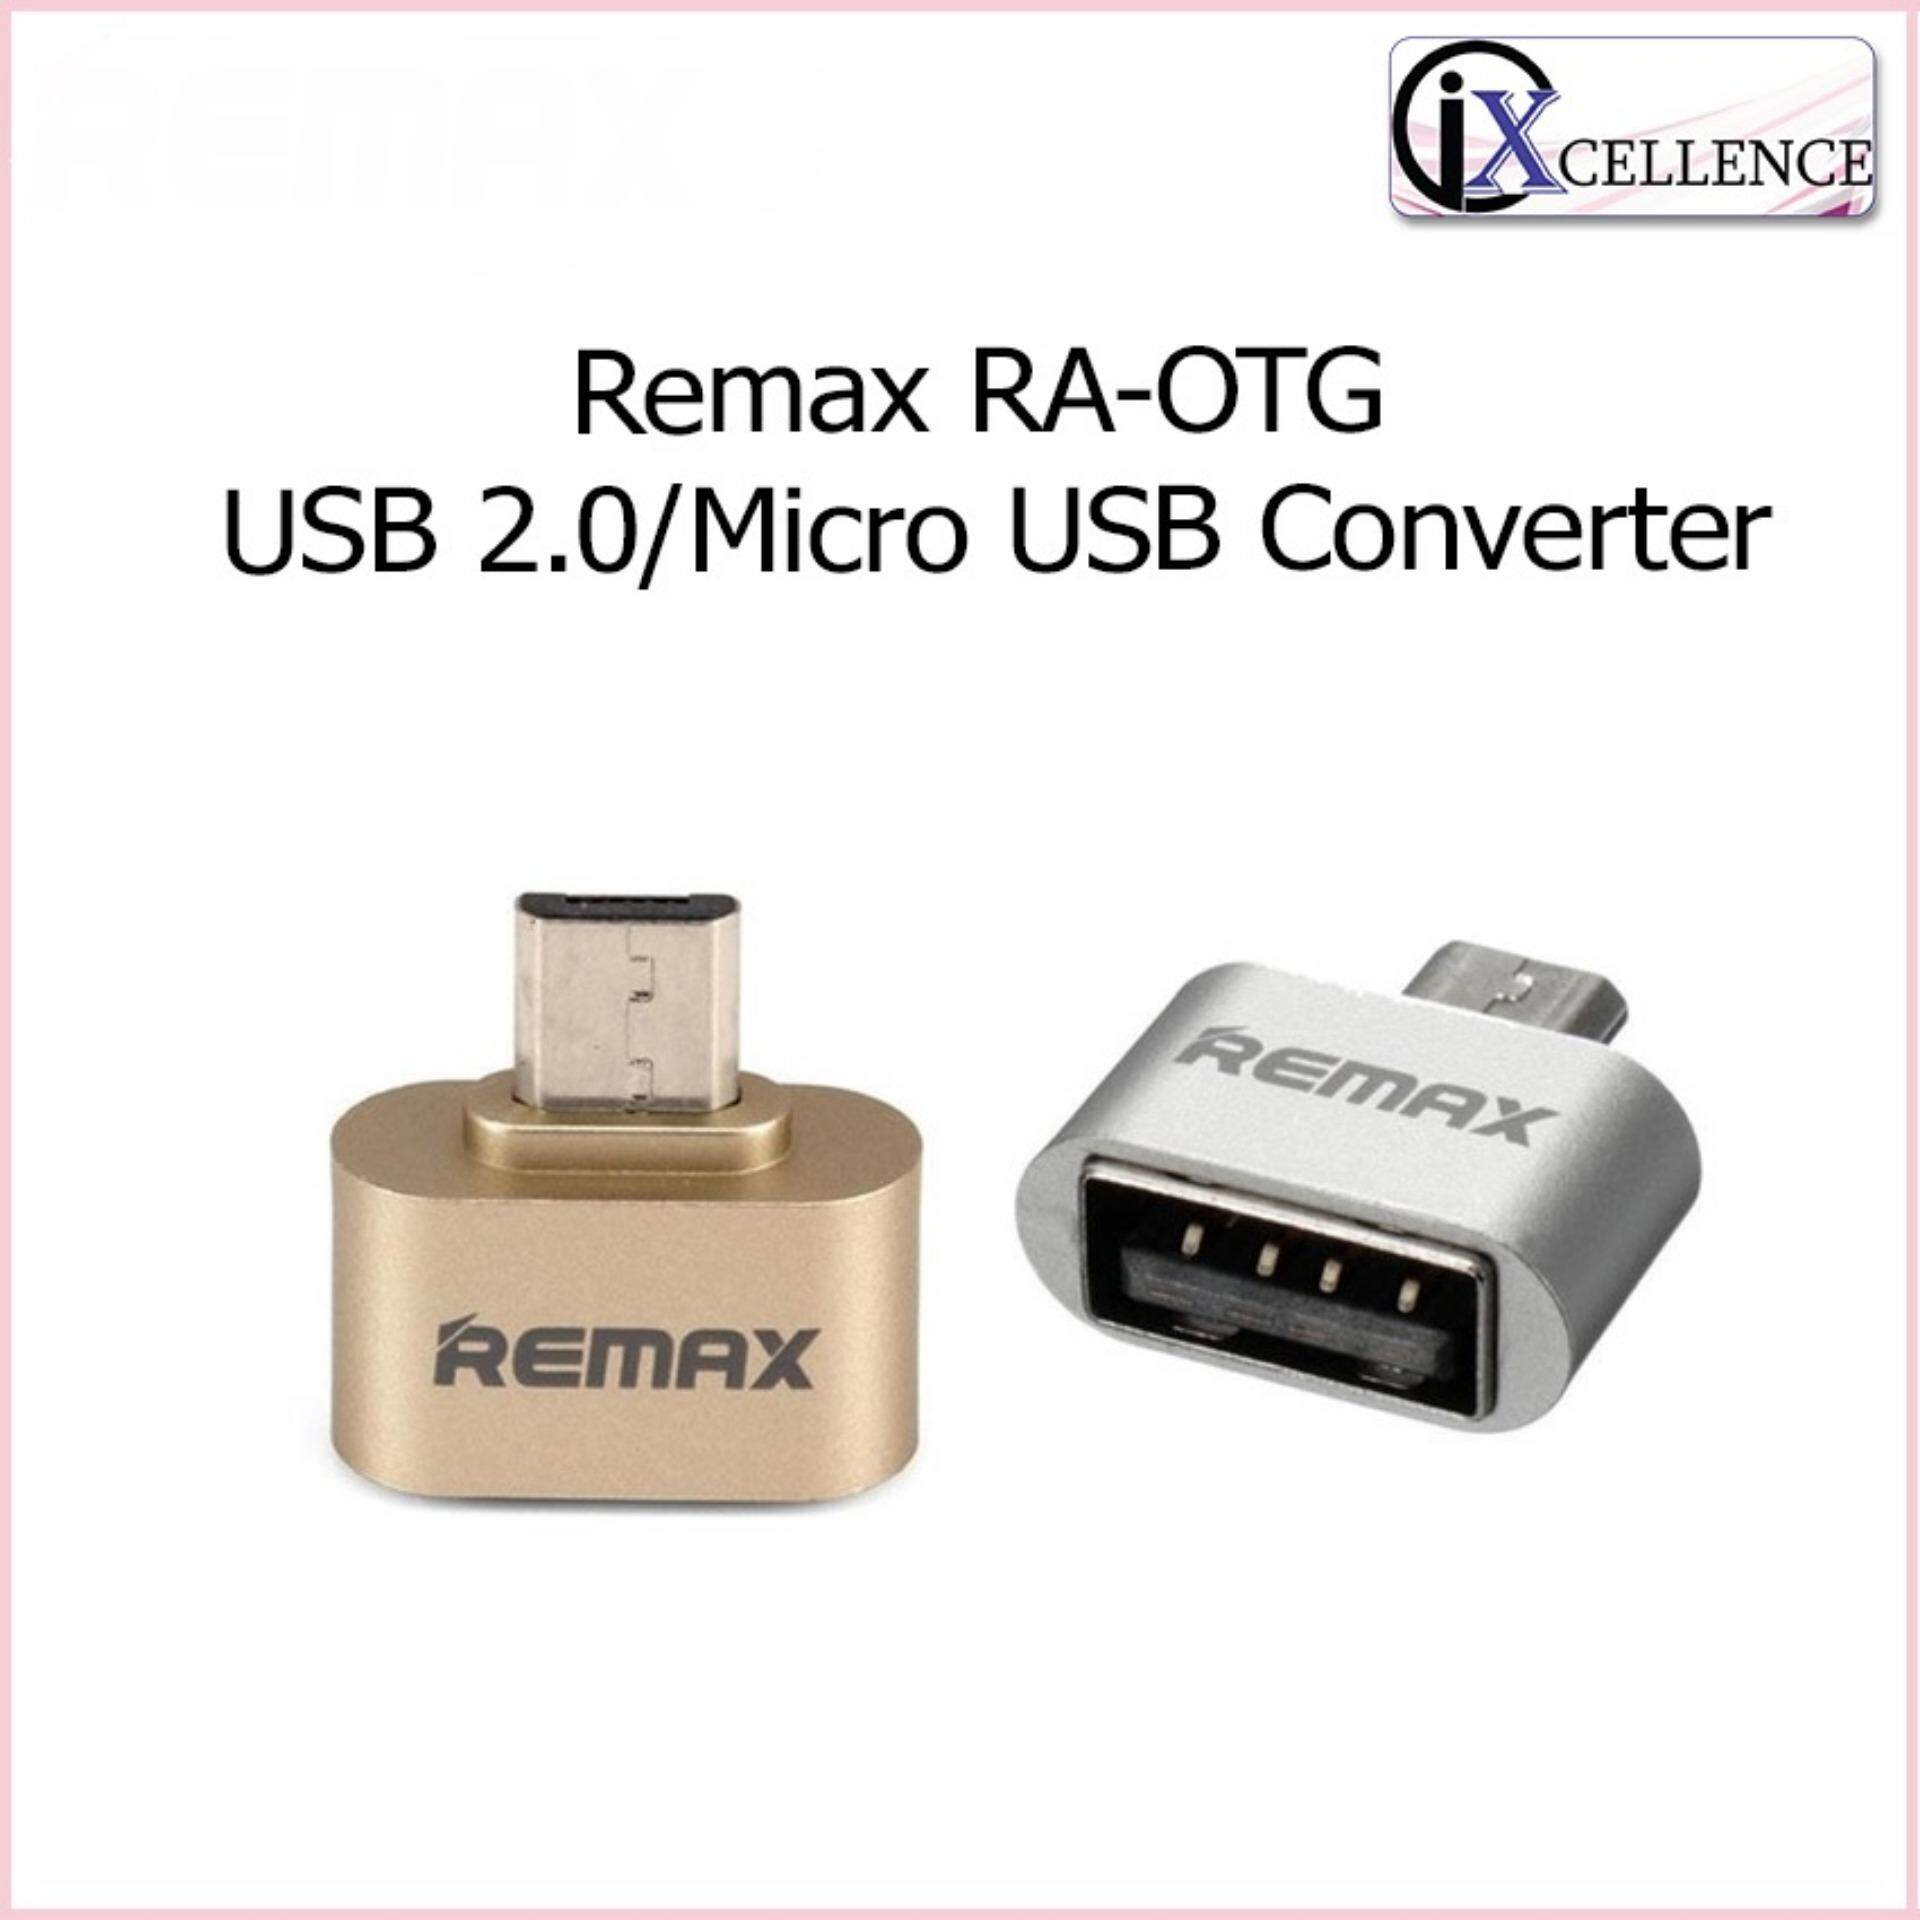 Remax Usb High Speed Cable With Best Price In Malaysia Wiring Diagram5pin Micro Cableled Product On Ix Ra Otg 20 Converter Gold